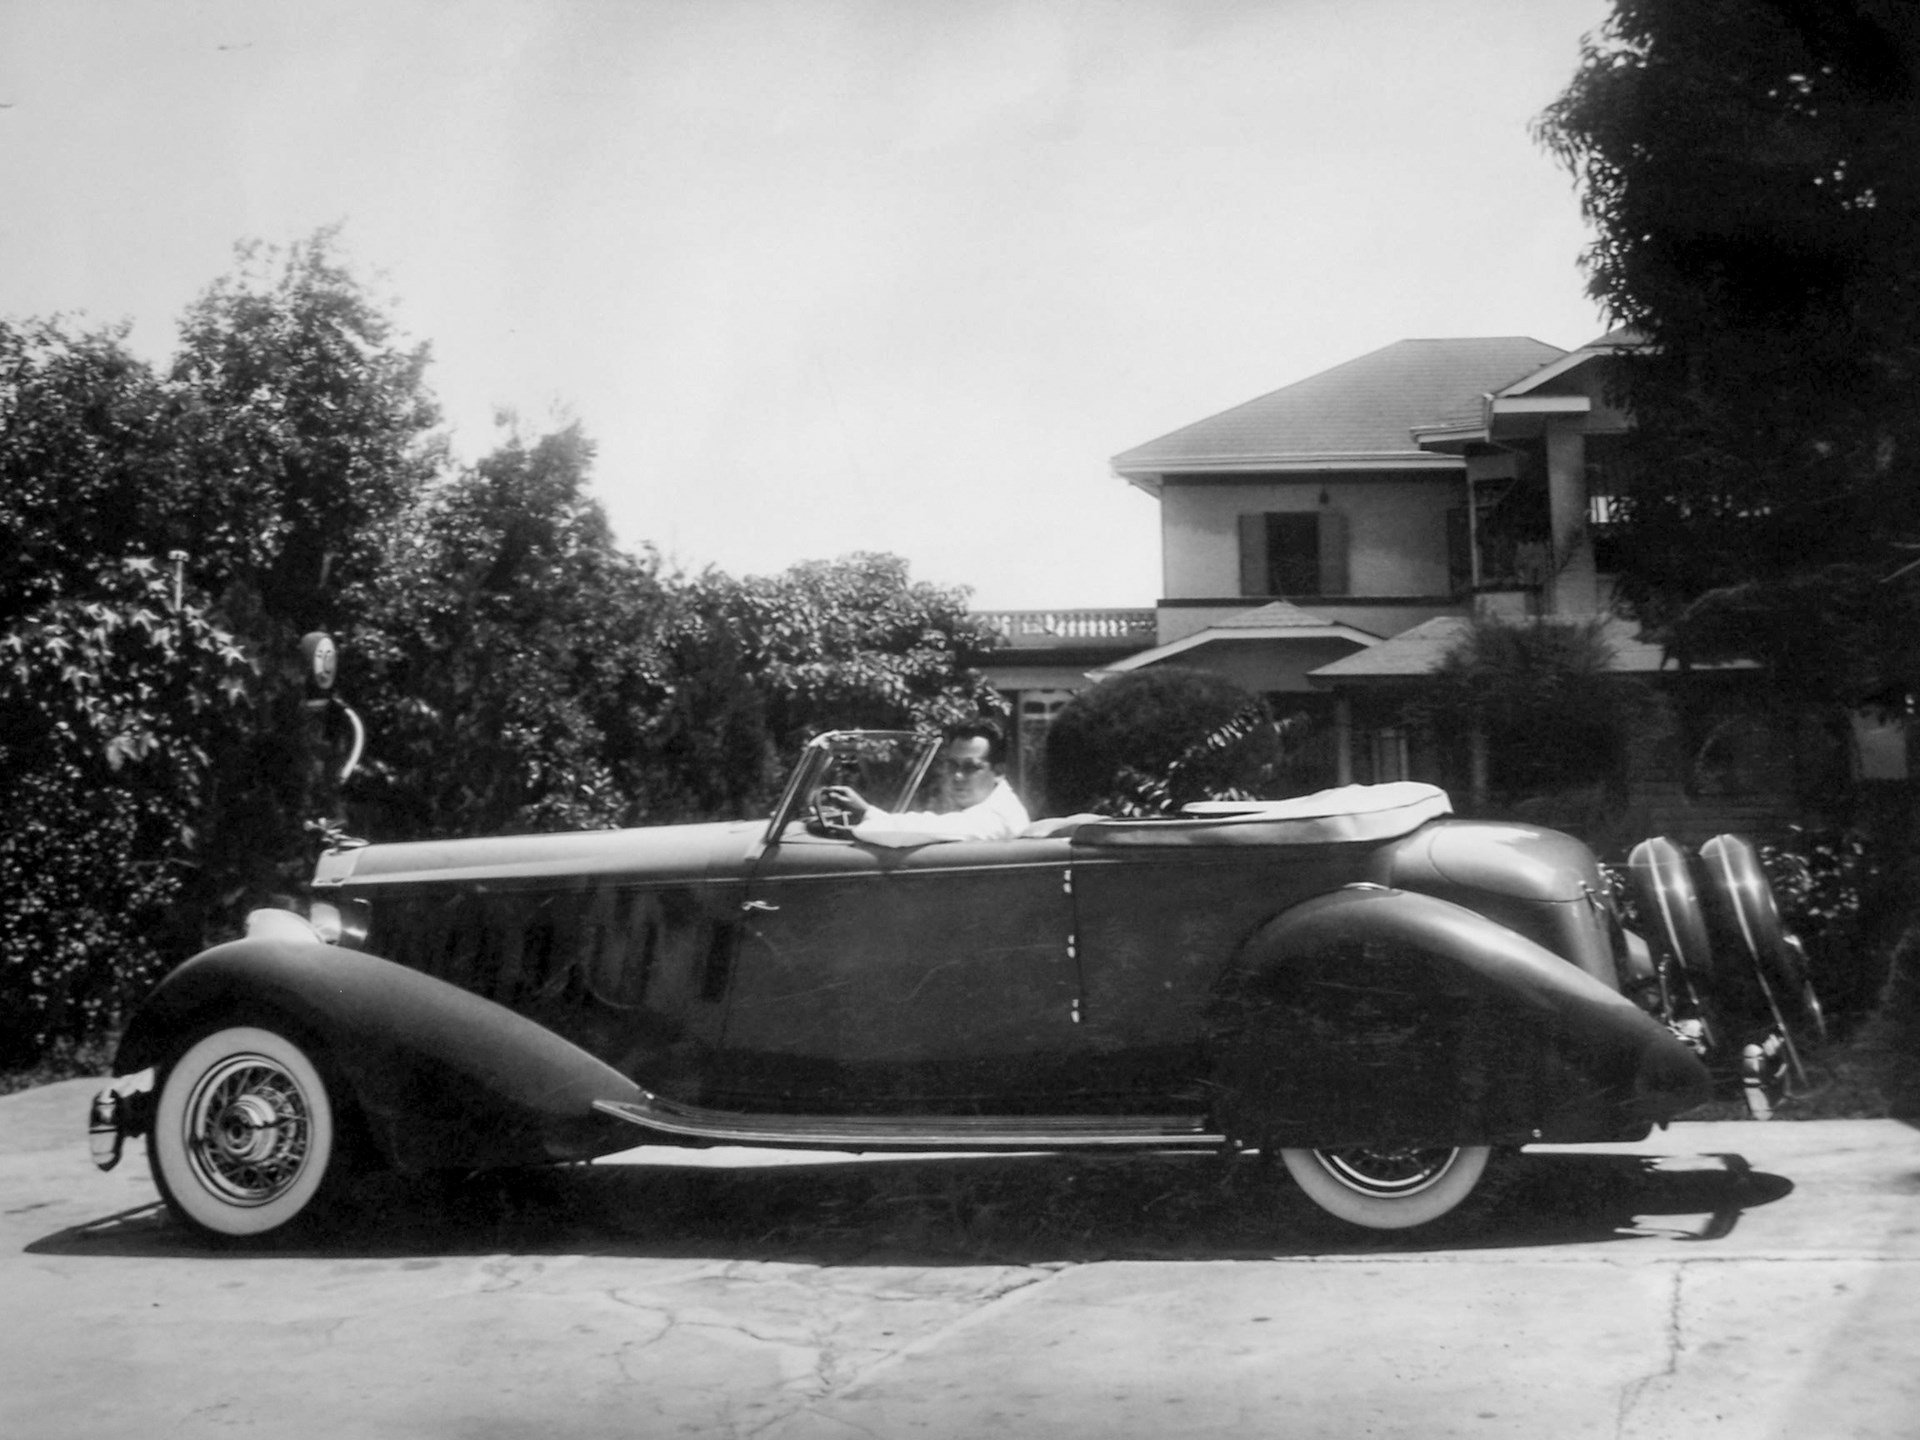 Judge LaCosta with his new Packard in 1934, showing its one-off fenders.